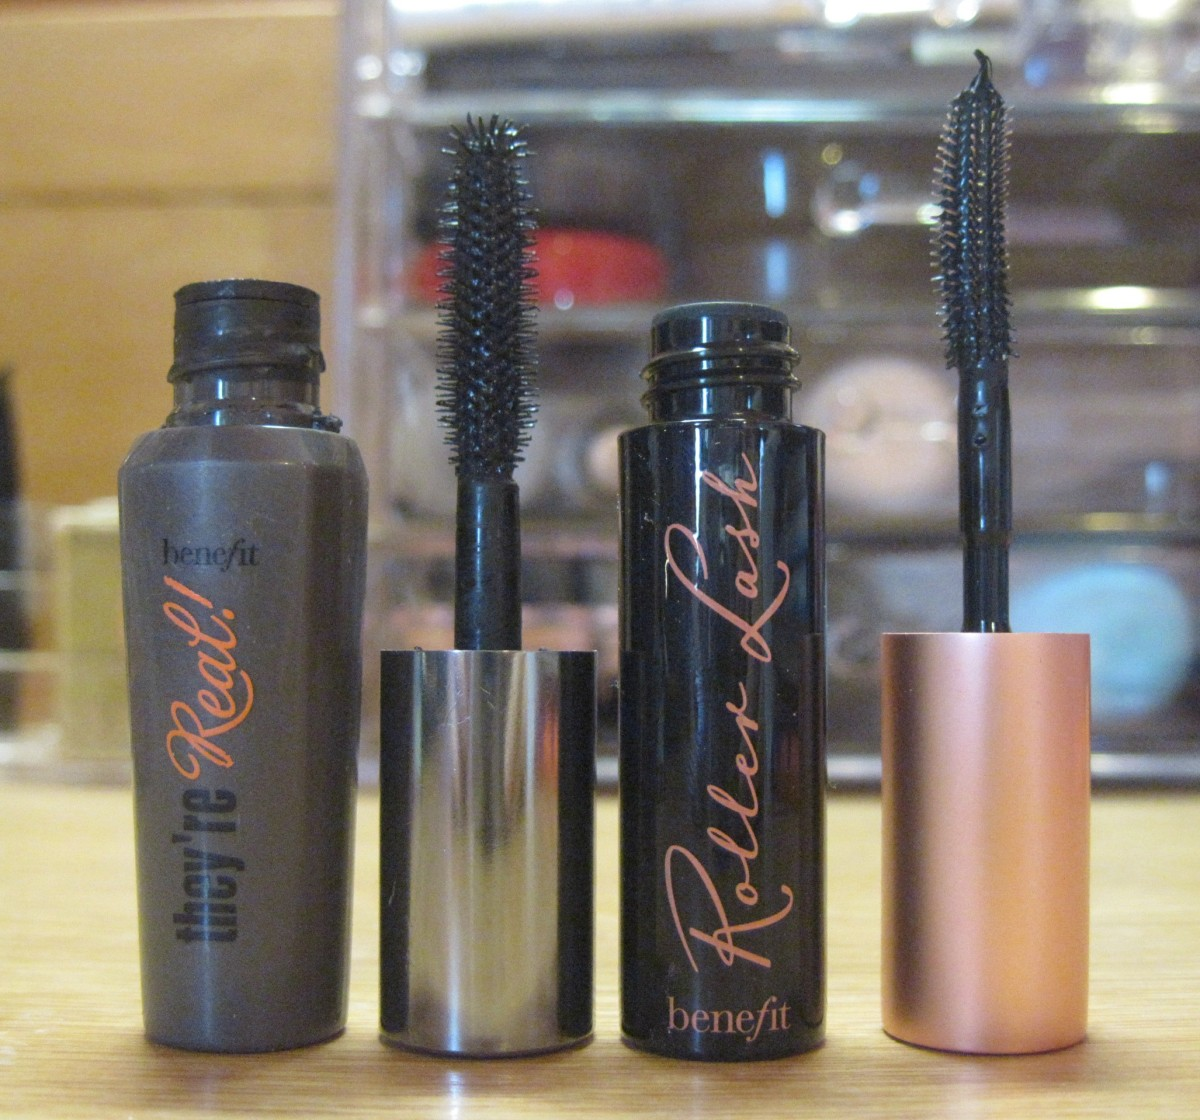 Benefit Cosmetics: They're Real vs. Roller Lash